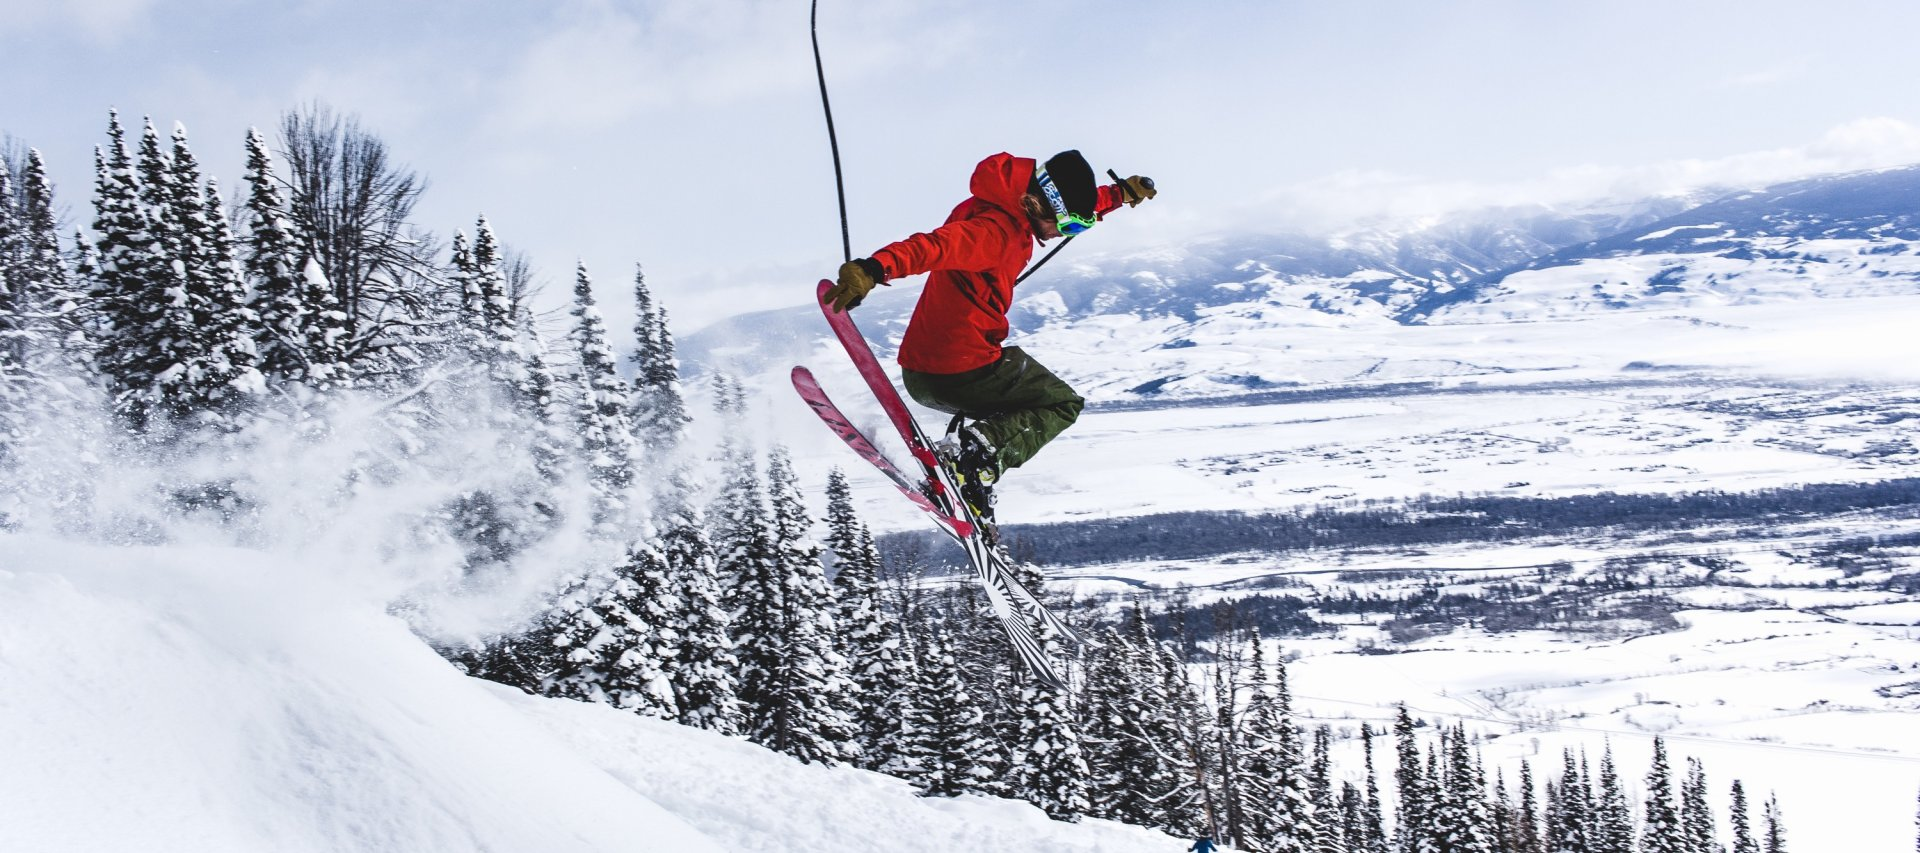 Take a look at what powder trails lie ahead for you and your family during your ski trip to Jackson Hole!